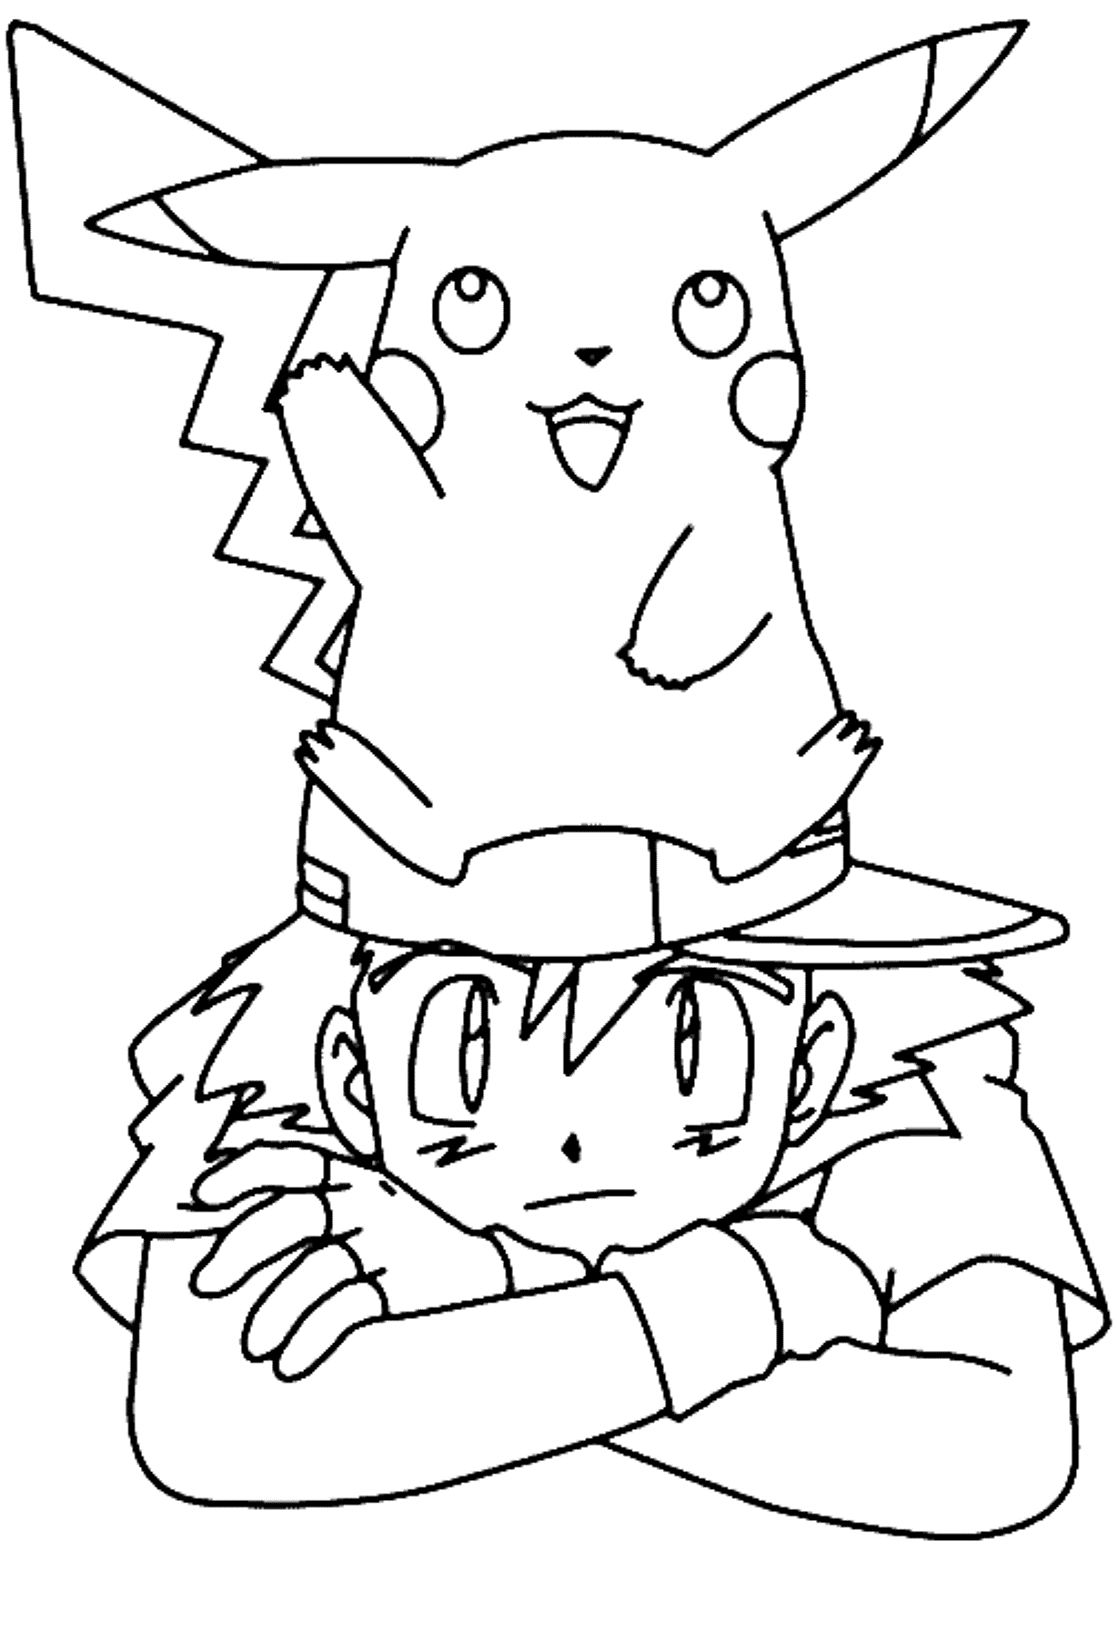 pikachu coloring pages - pokemon cute pikachu coloring pages